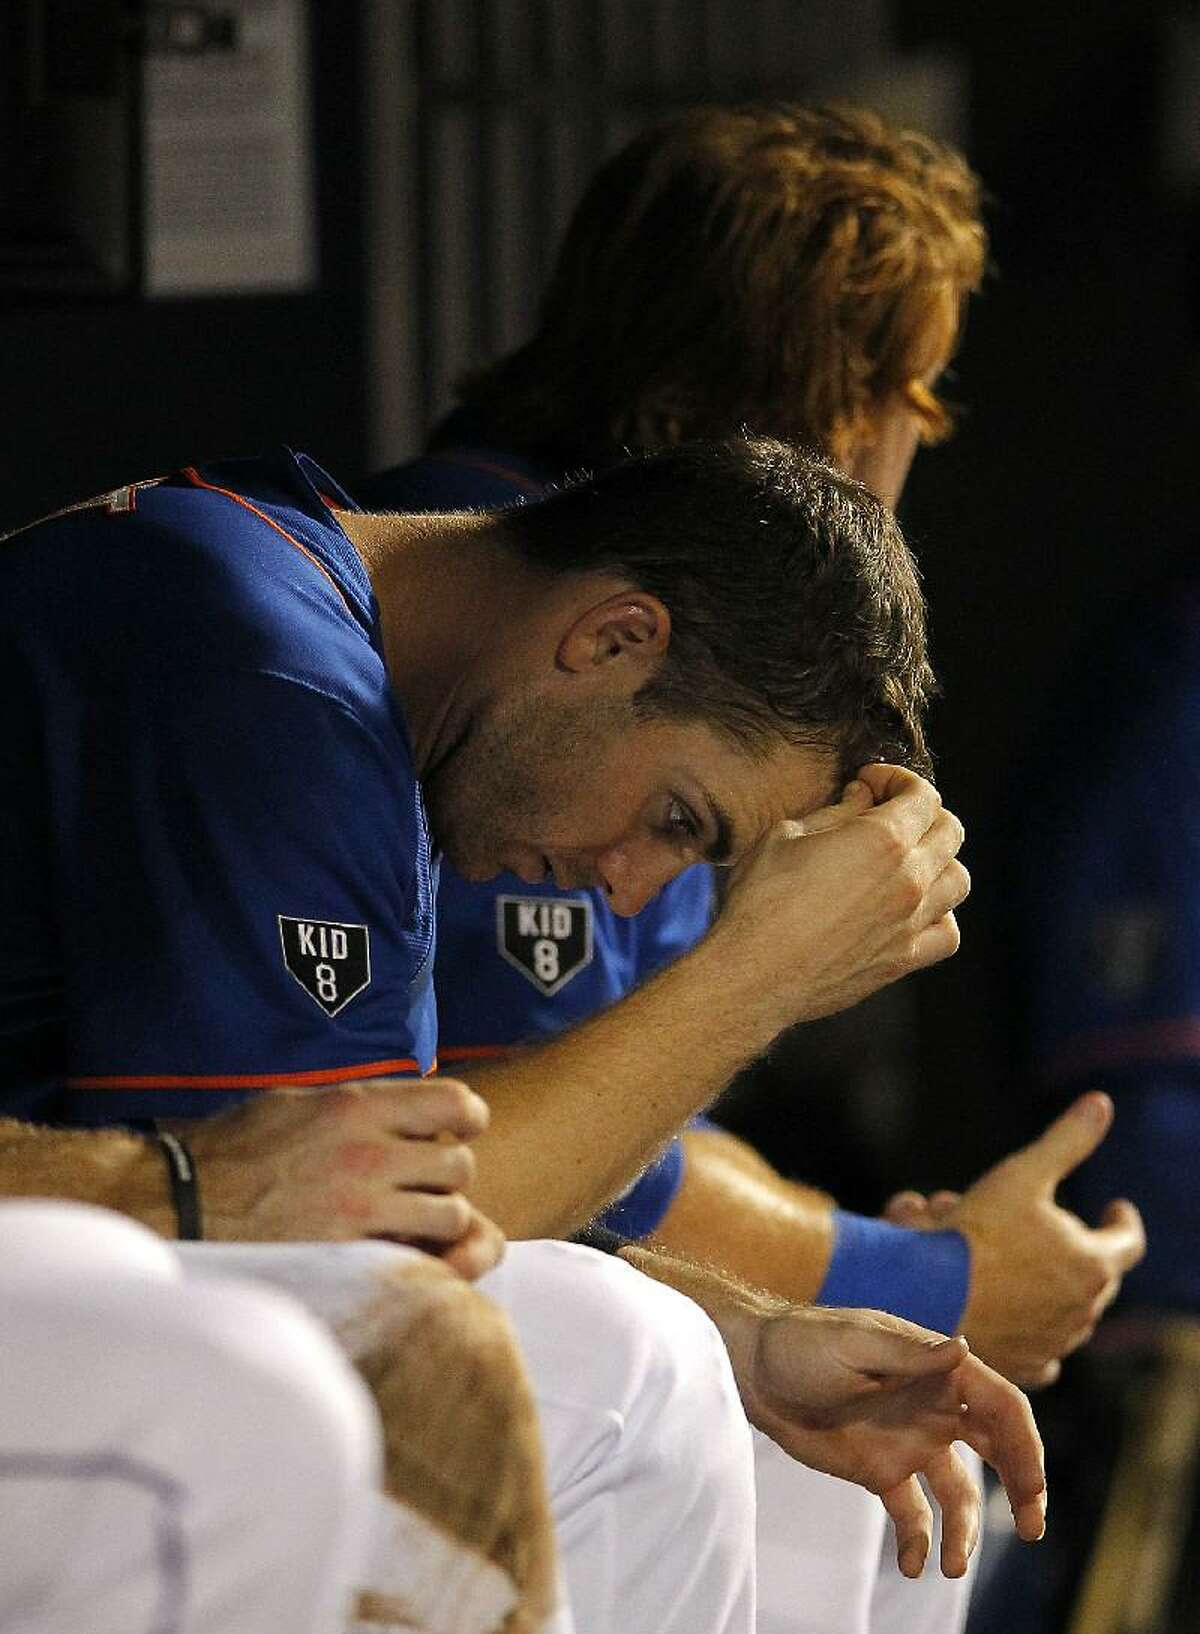 ASSOCIATED PRESS New York Mets' David Wright sits in the dugout while waiting for the final out in the ninth inning of a Mets 3-1 loss to the Houston Astros at Citi Field in New York on Friday.